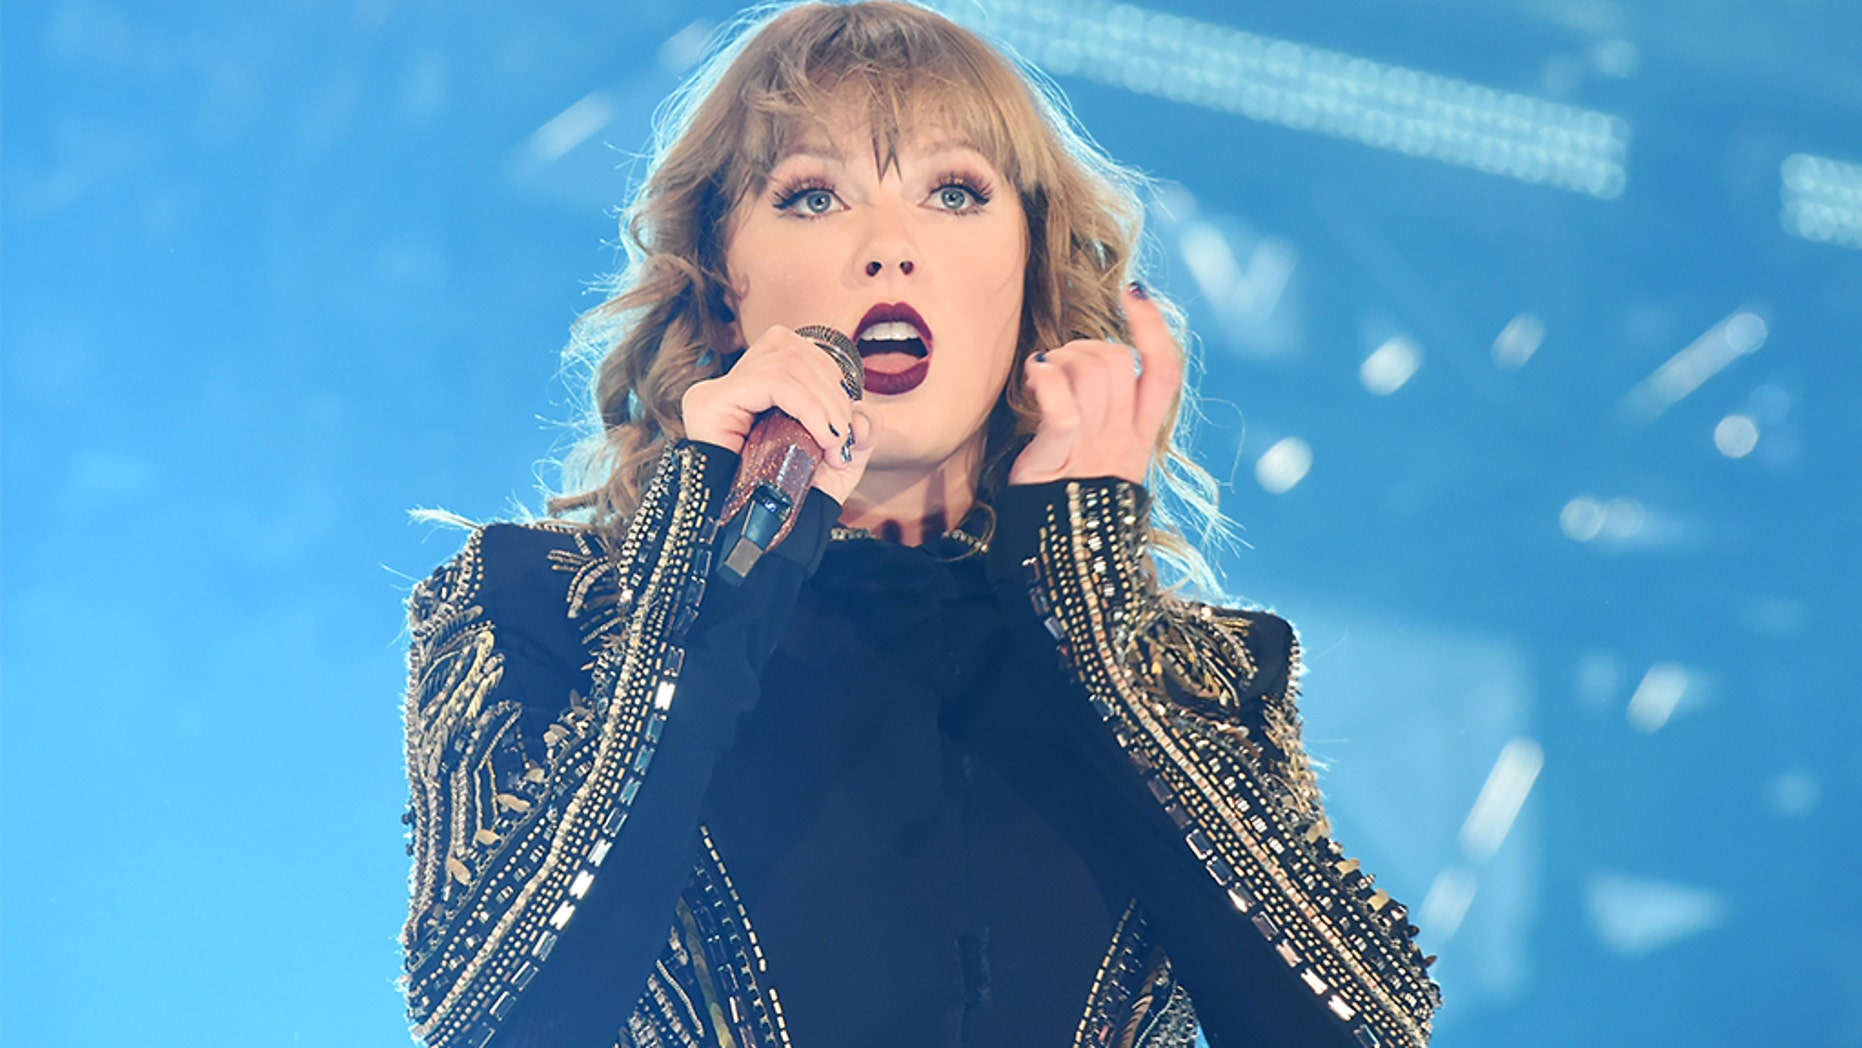 Taylor Swift uses facial recognition on concert-goers to weed out stalkers